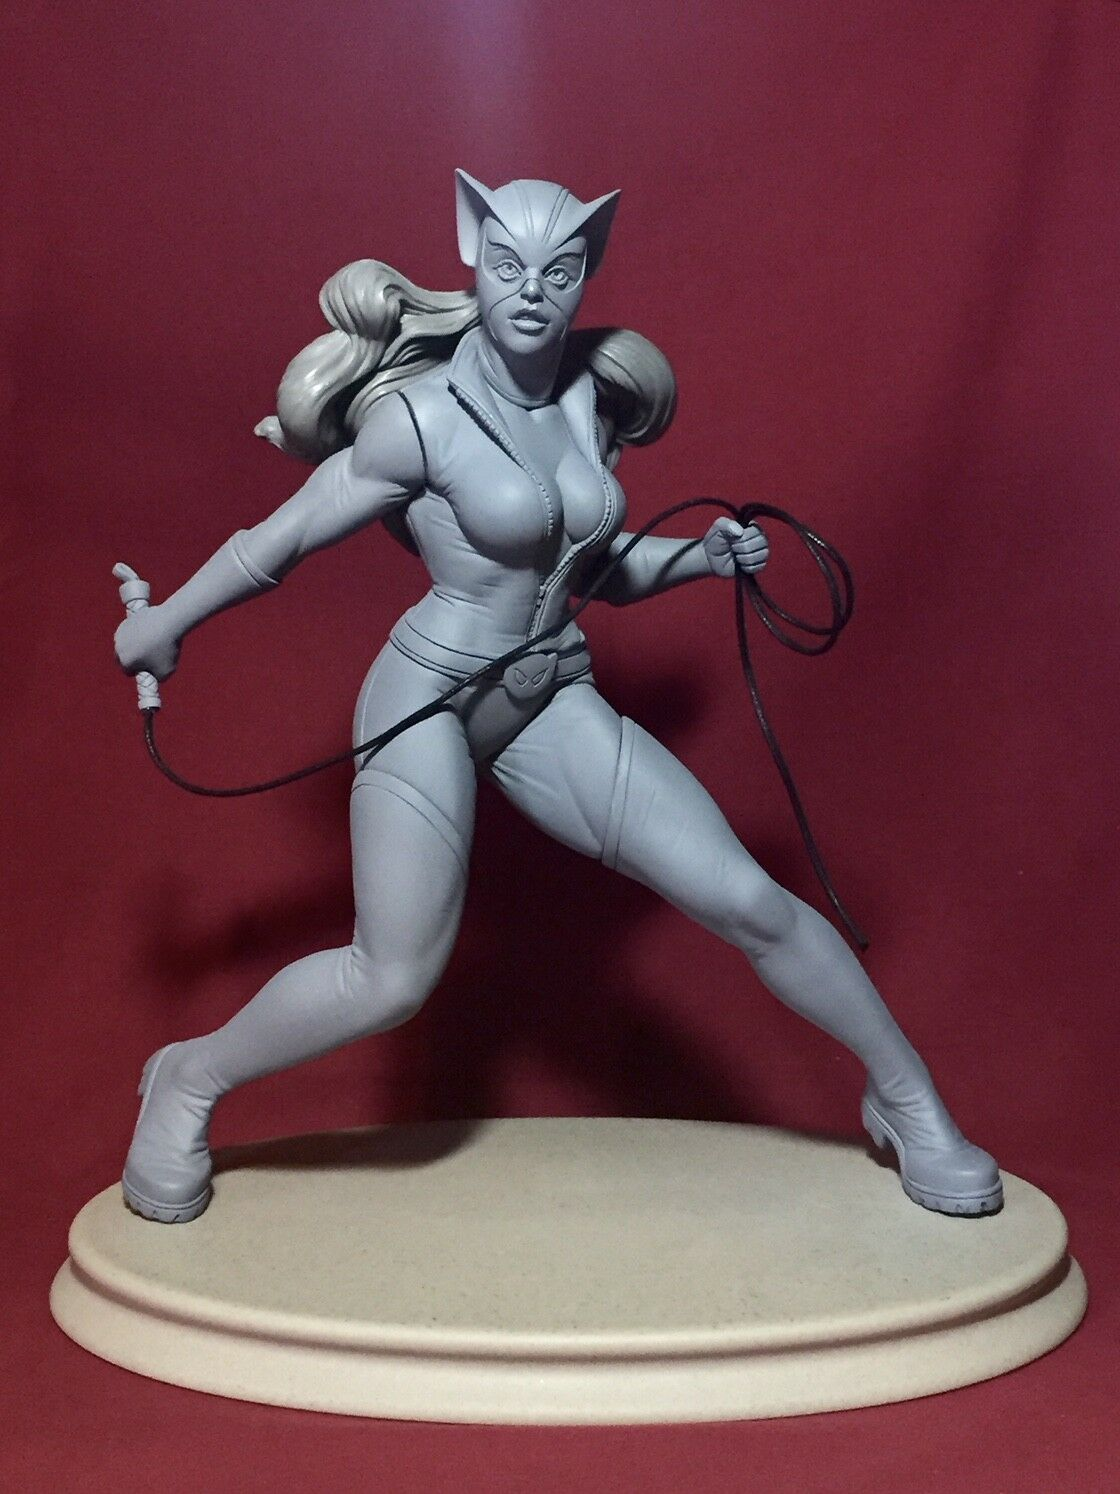 CATWOMAN 1 6 scale model kit statue NEW, LIMITED EDITION